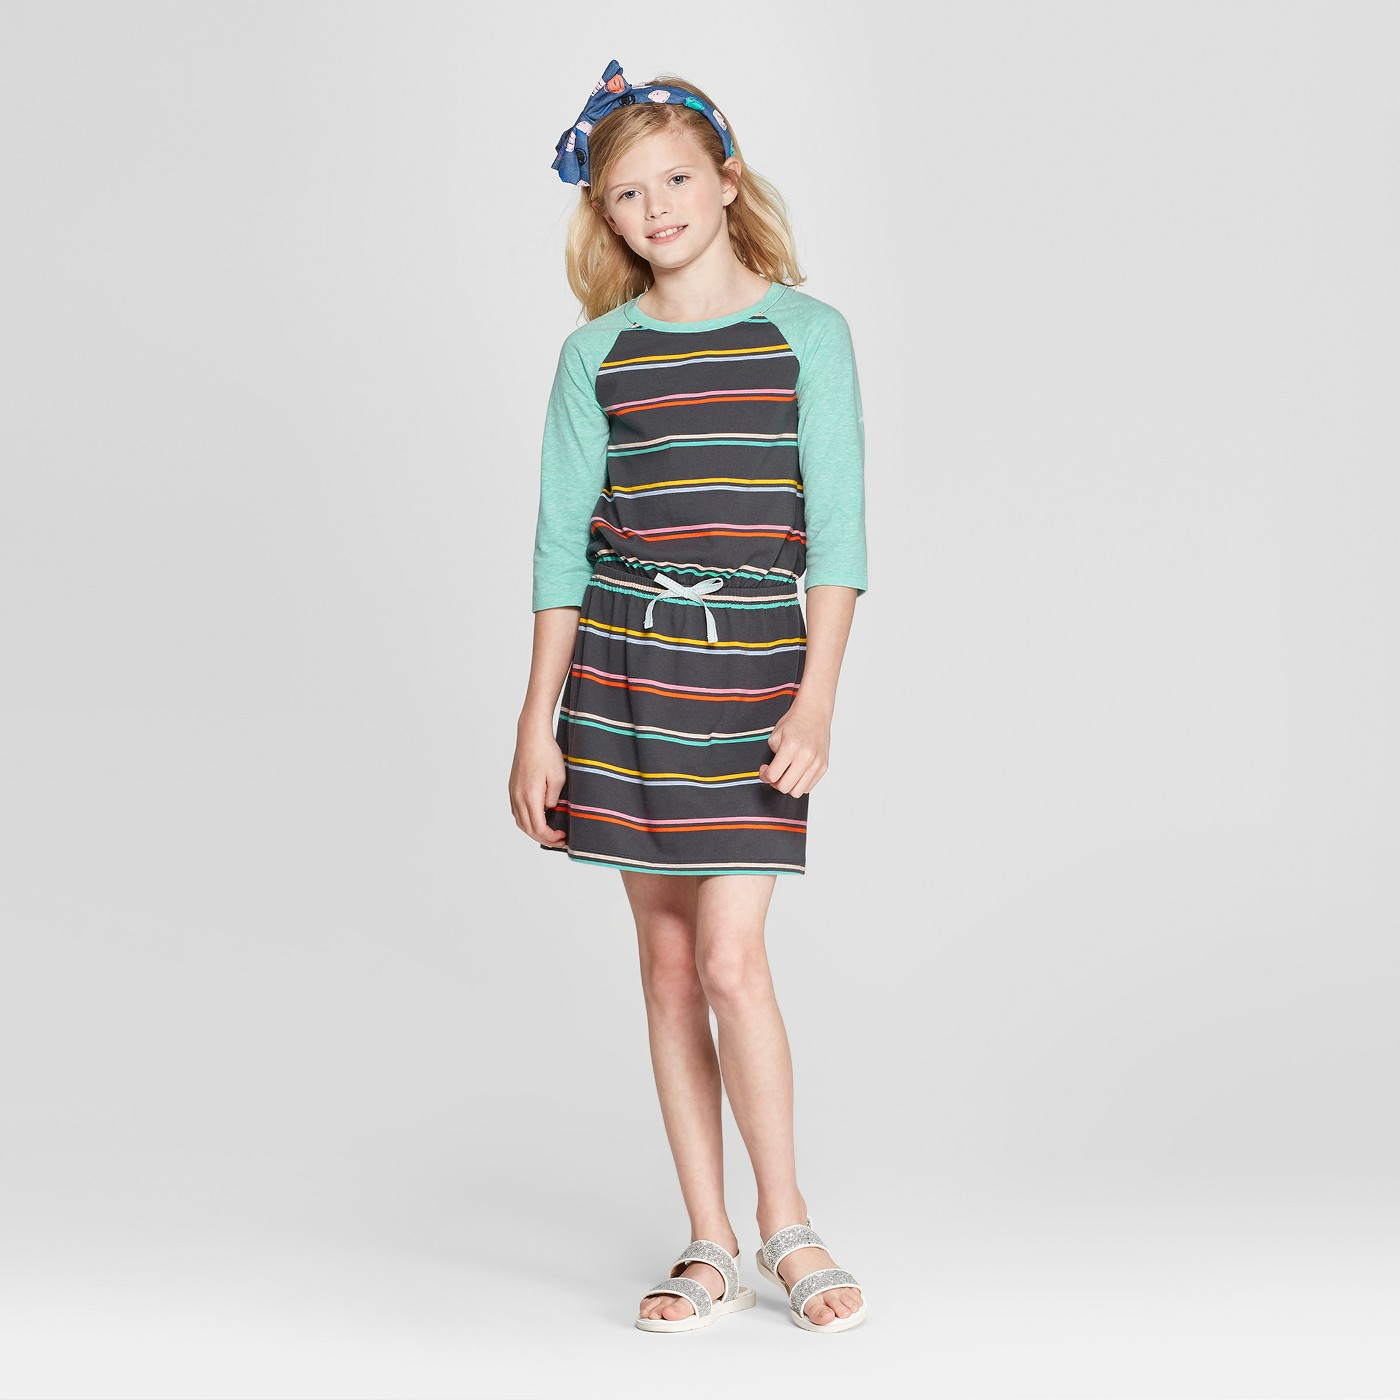 Girls' Long-Sleeve Stripe Dress - $13